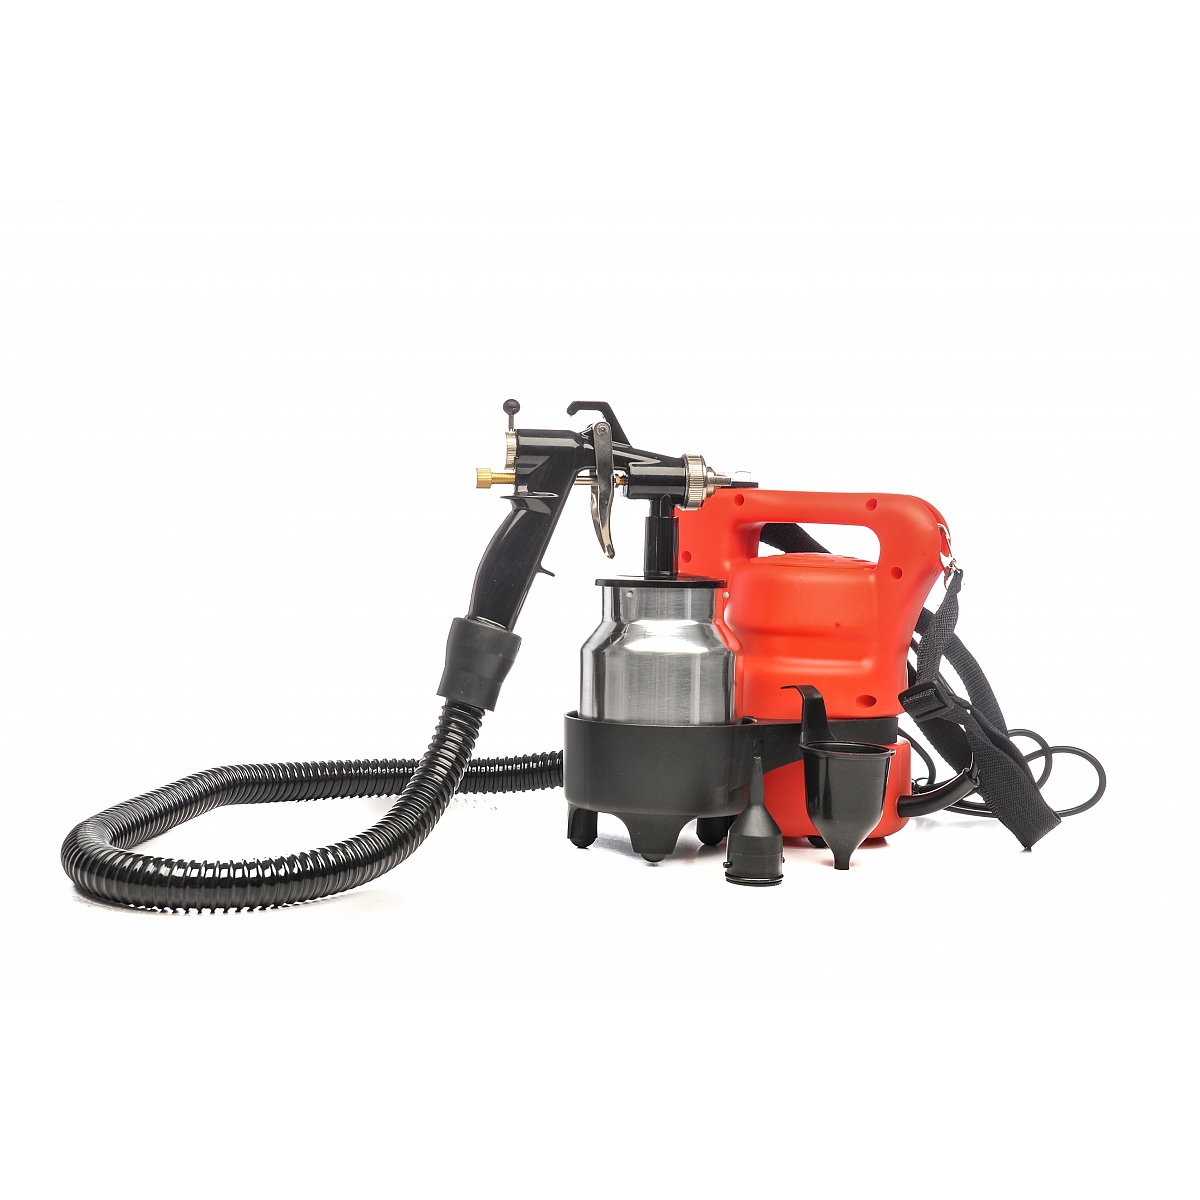 Air compressor spray gun with airbrush 450 w excel excel for Air compressor for pool closing